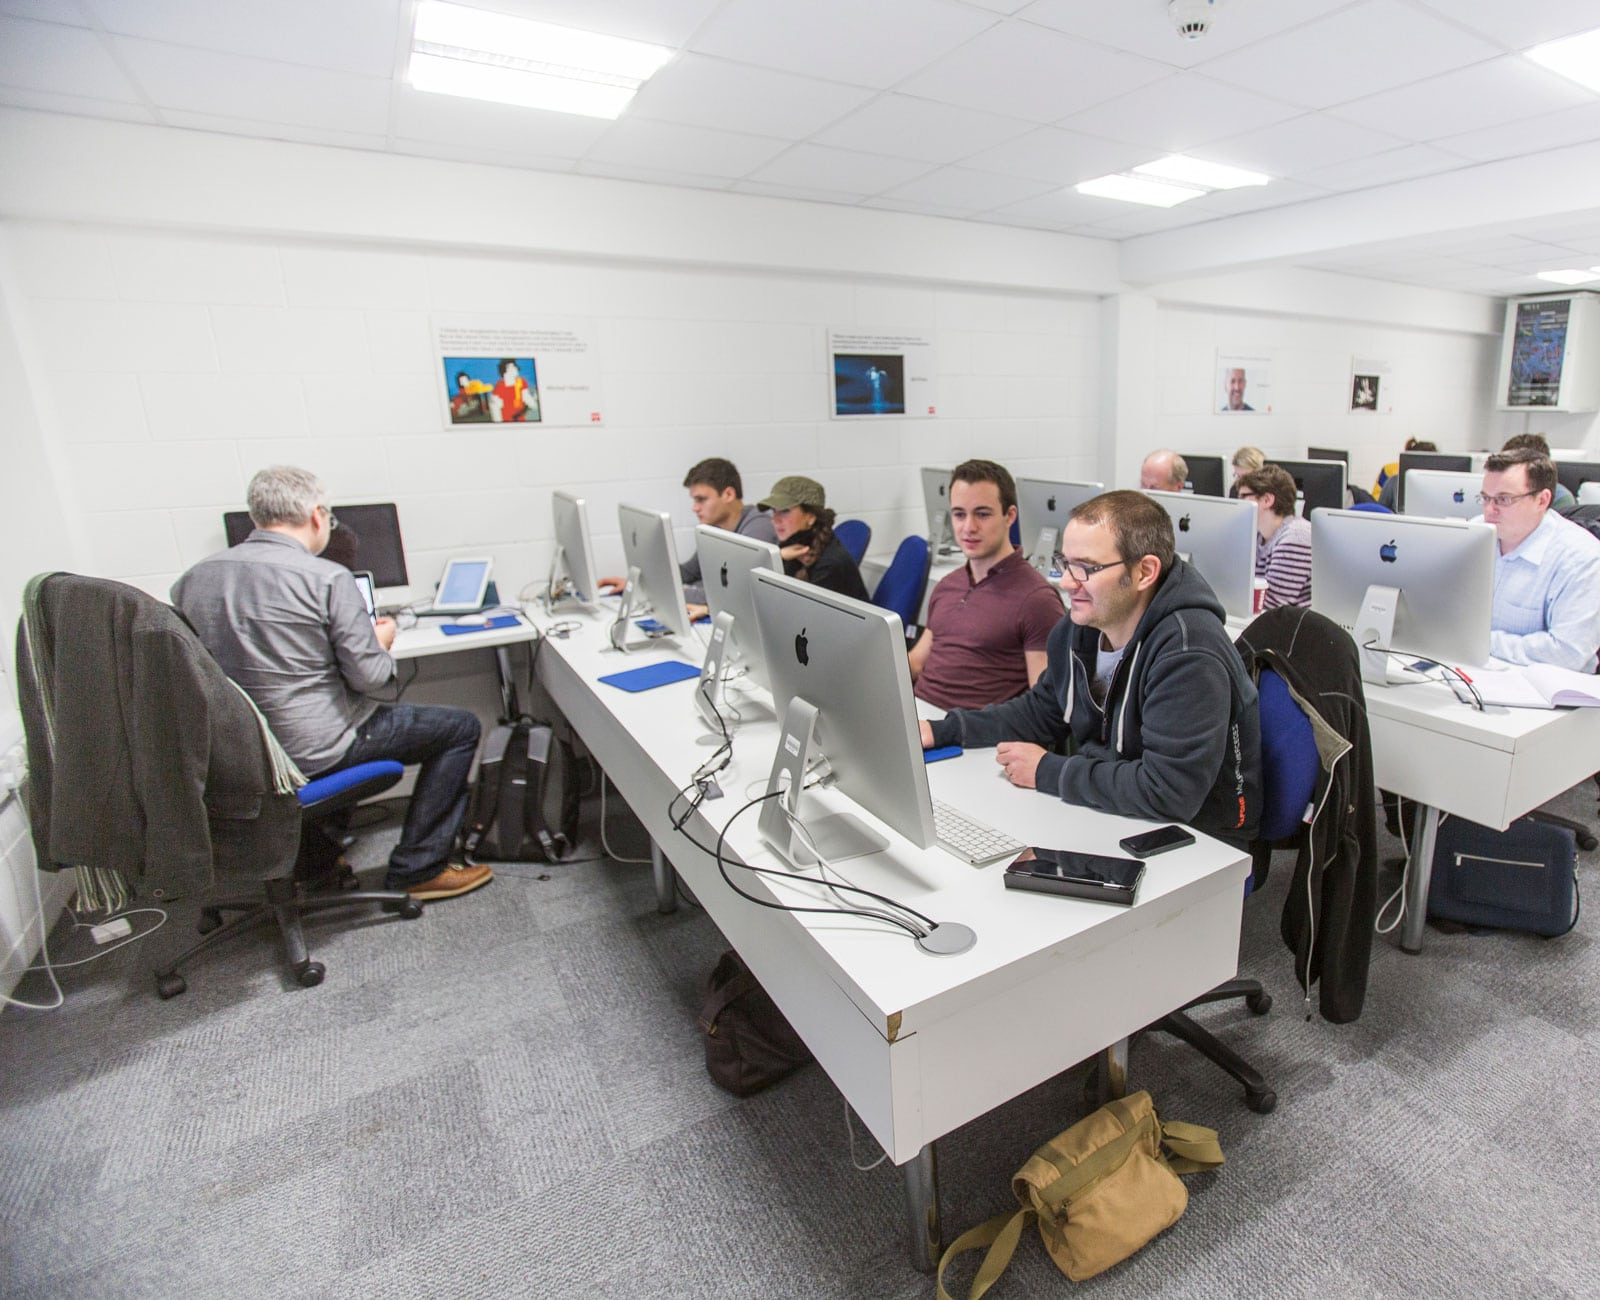 Students at computers working on web publishing software